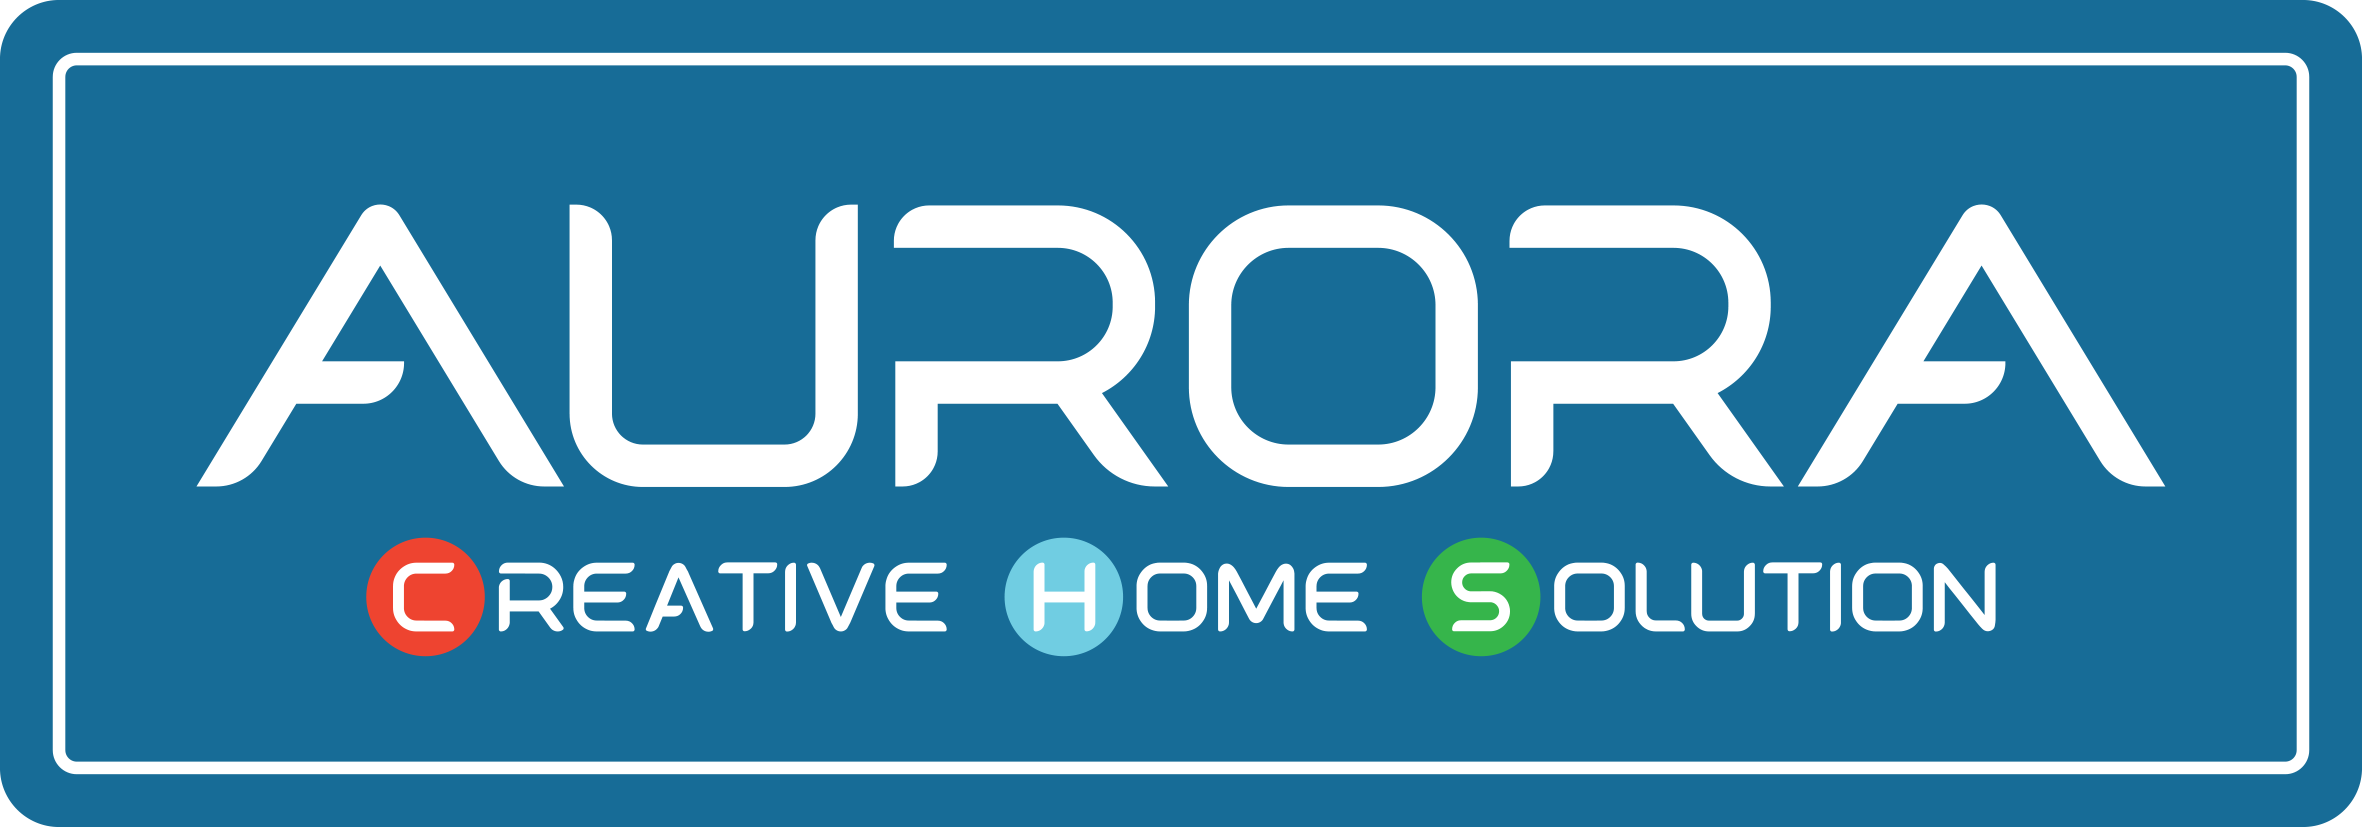 Aurora Creative Home Solution - La tua Falegnameria a Roma